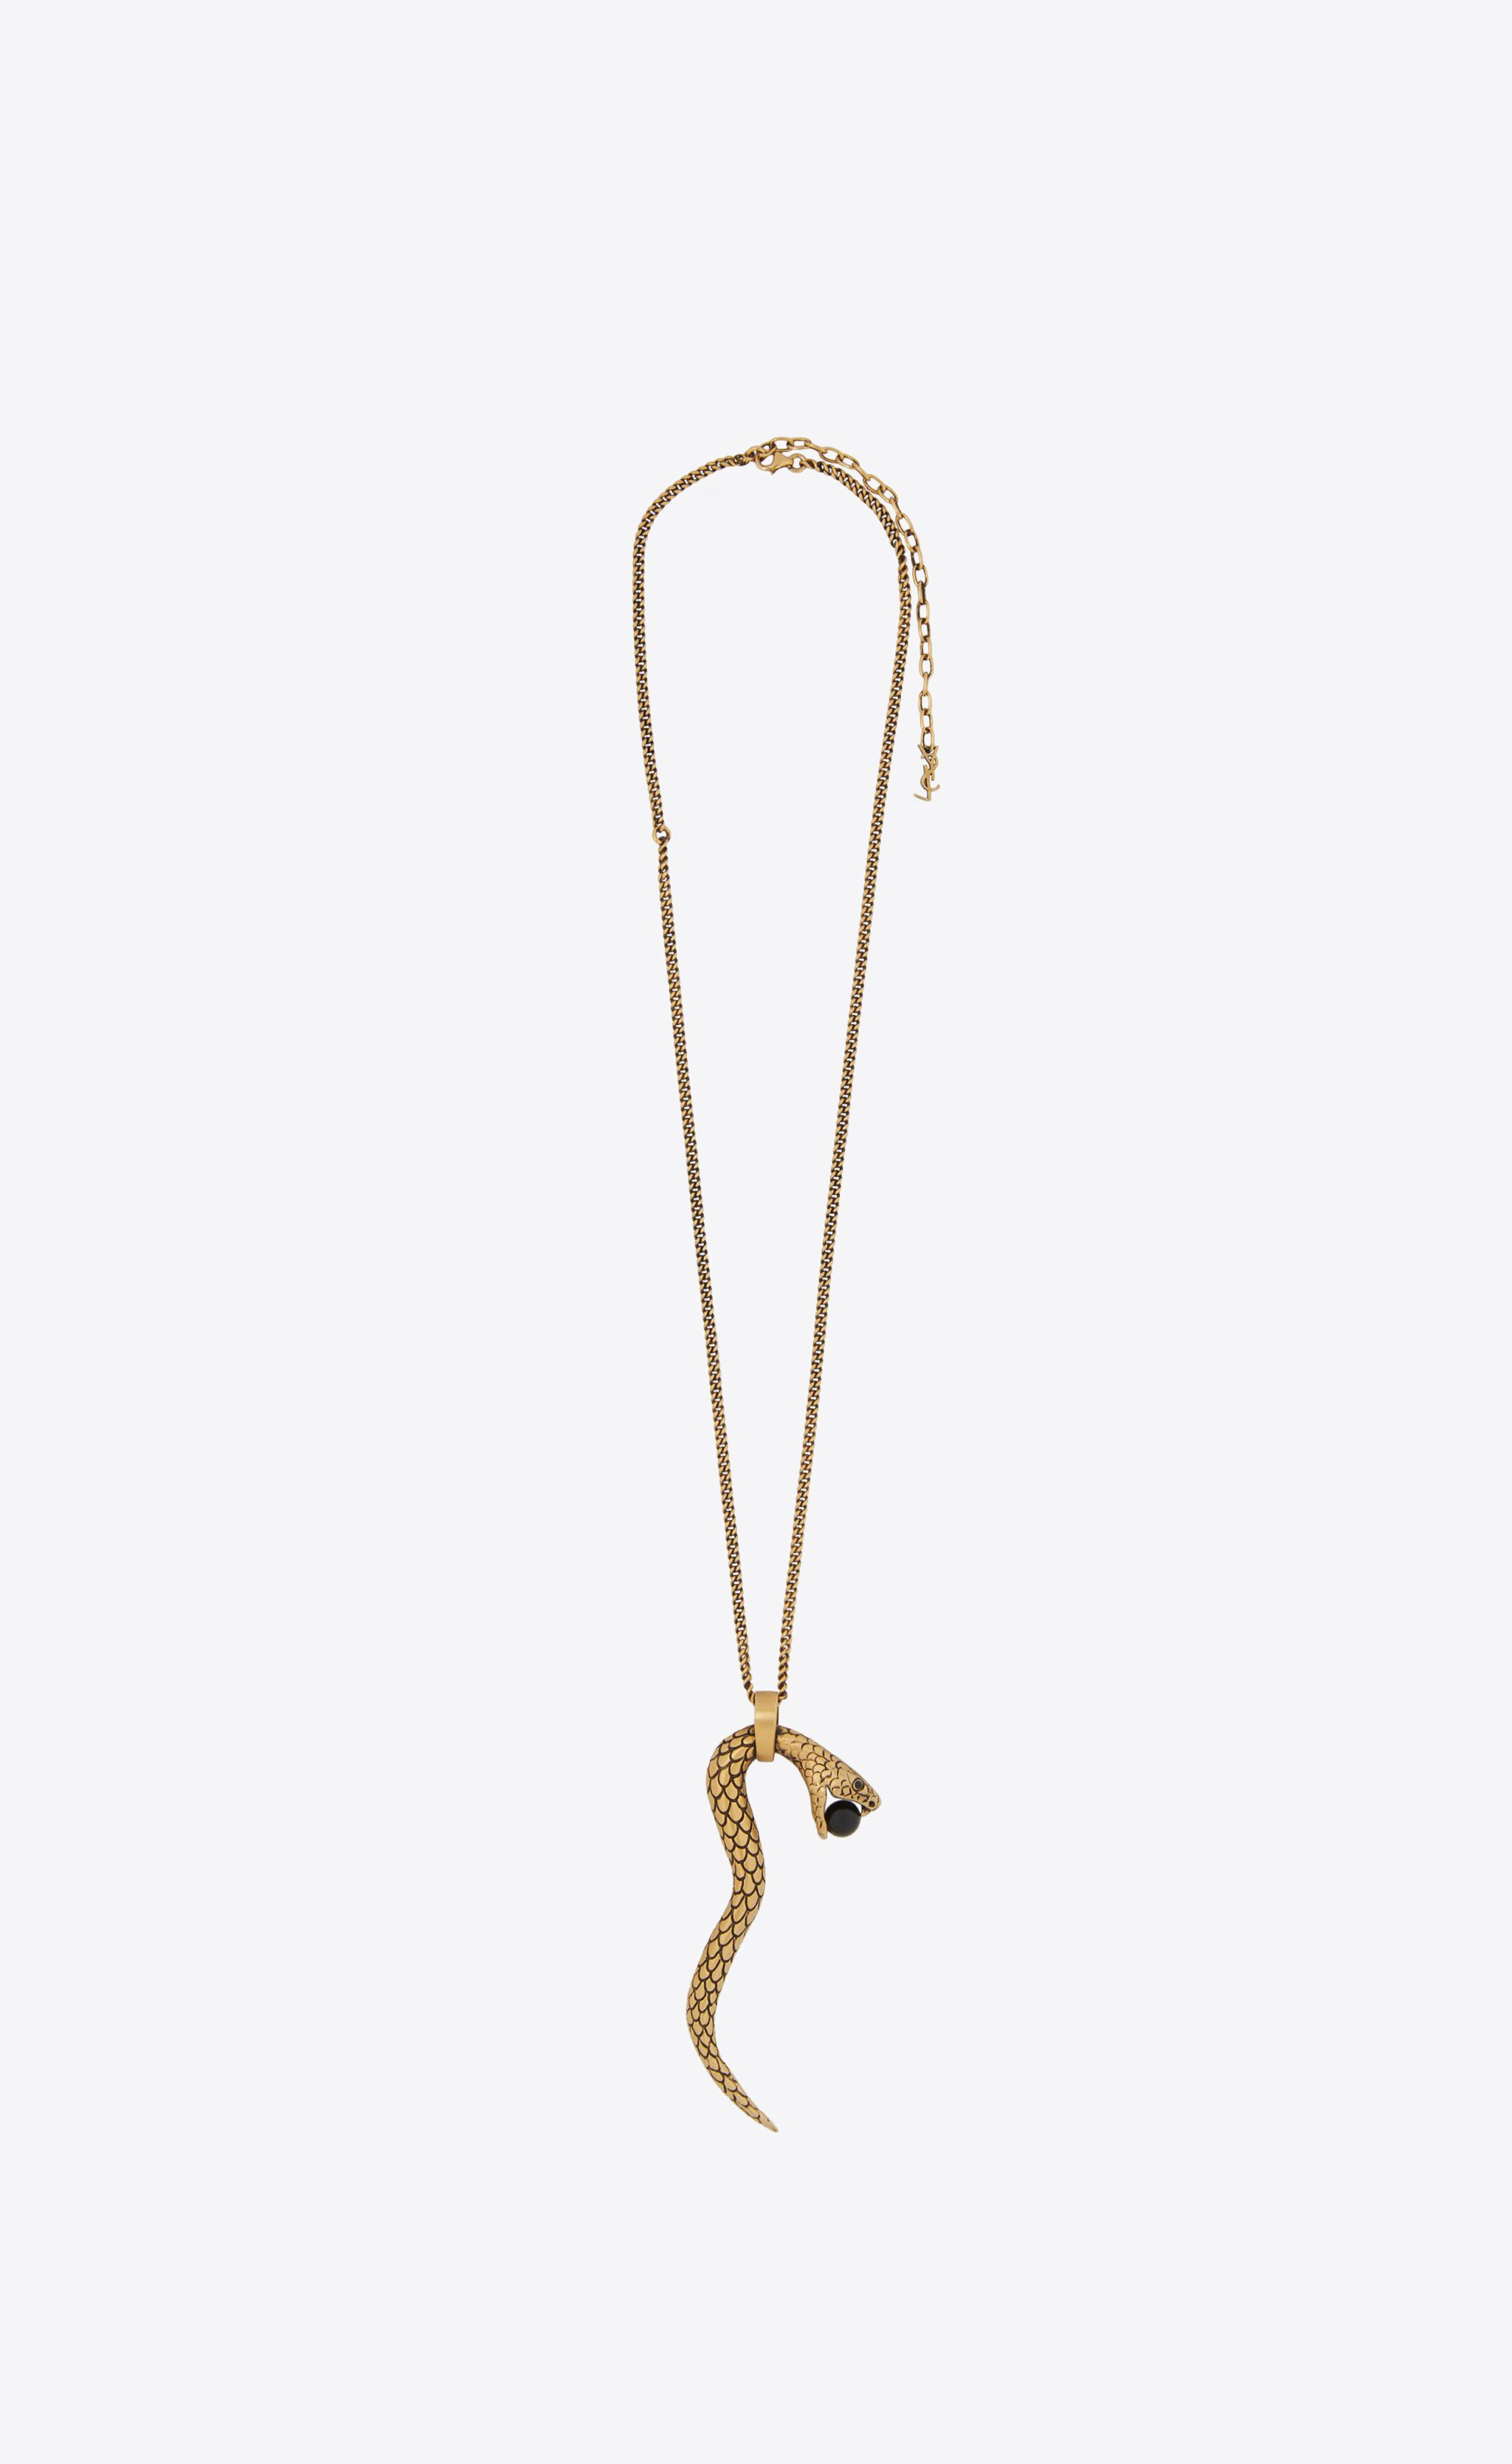 55696f83c0 Saint Laurent Snake Pendant In Gold Metal With A Black Glass Bead ...